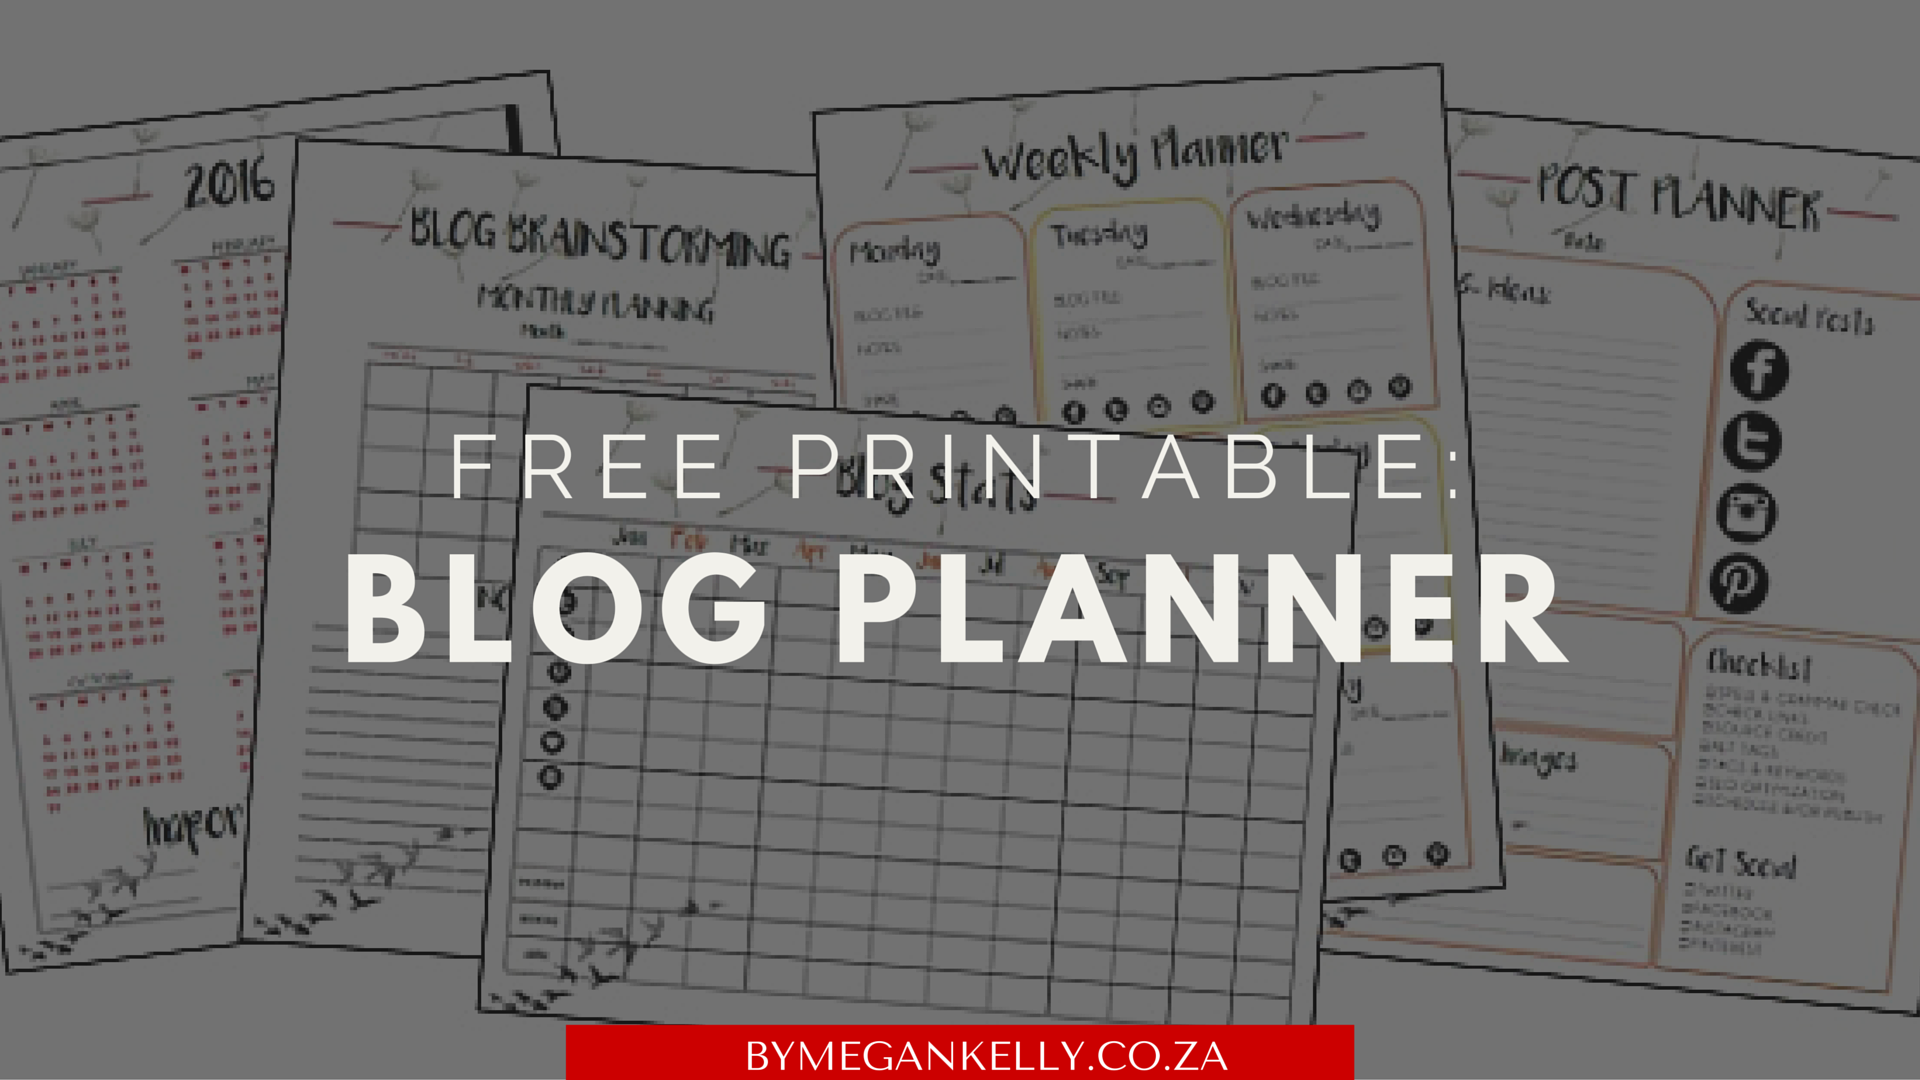 Free blog planner: By Megan Kelly